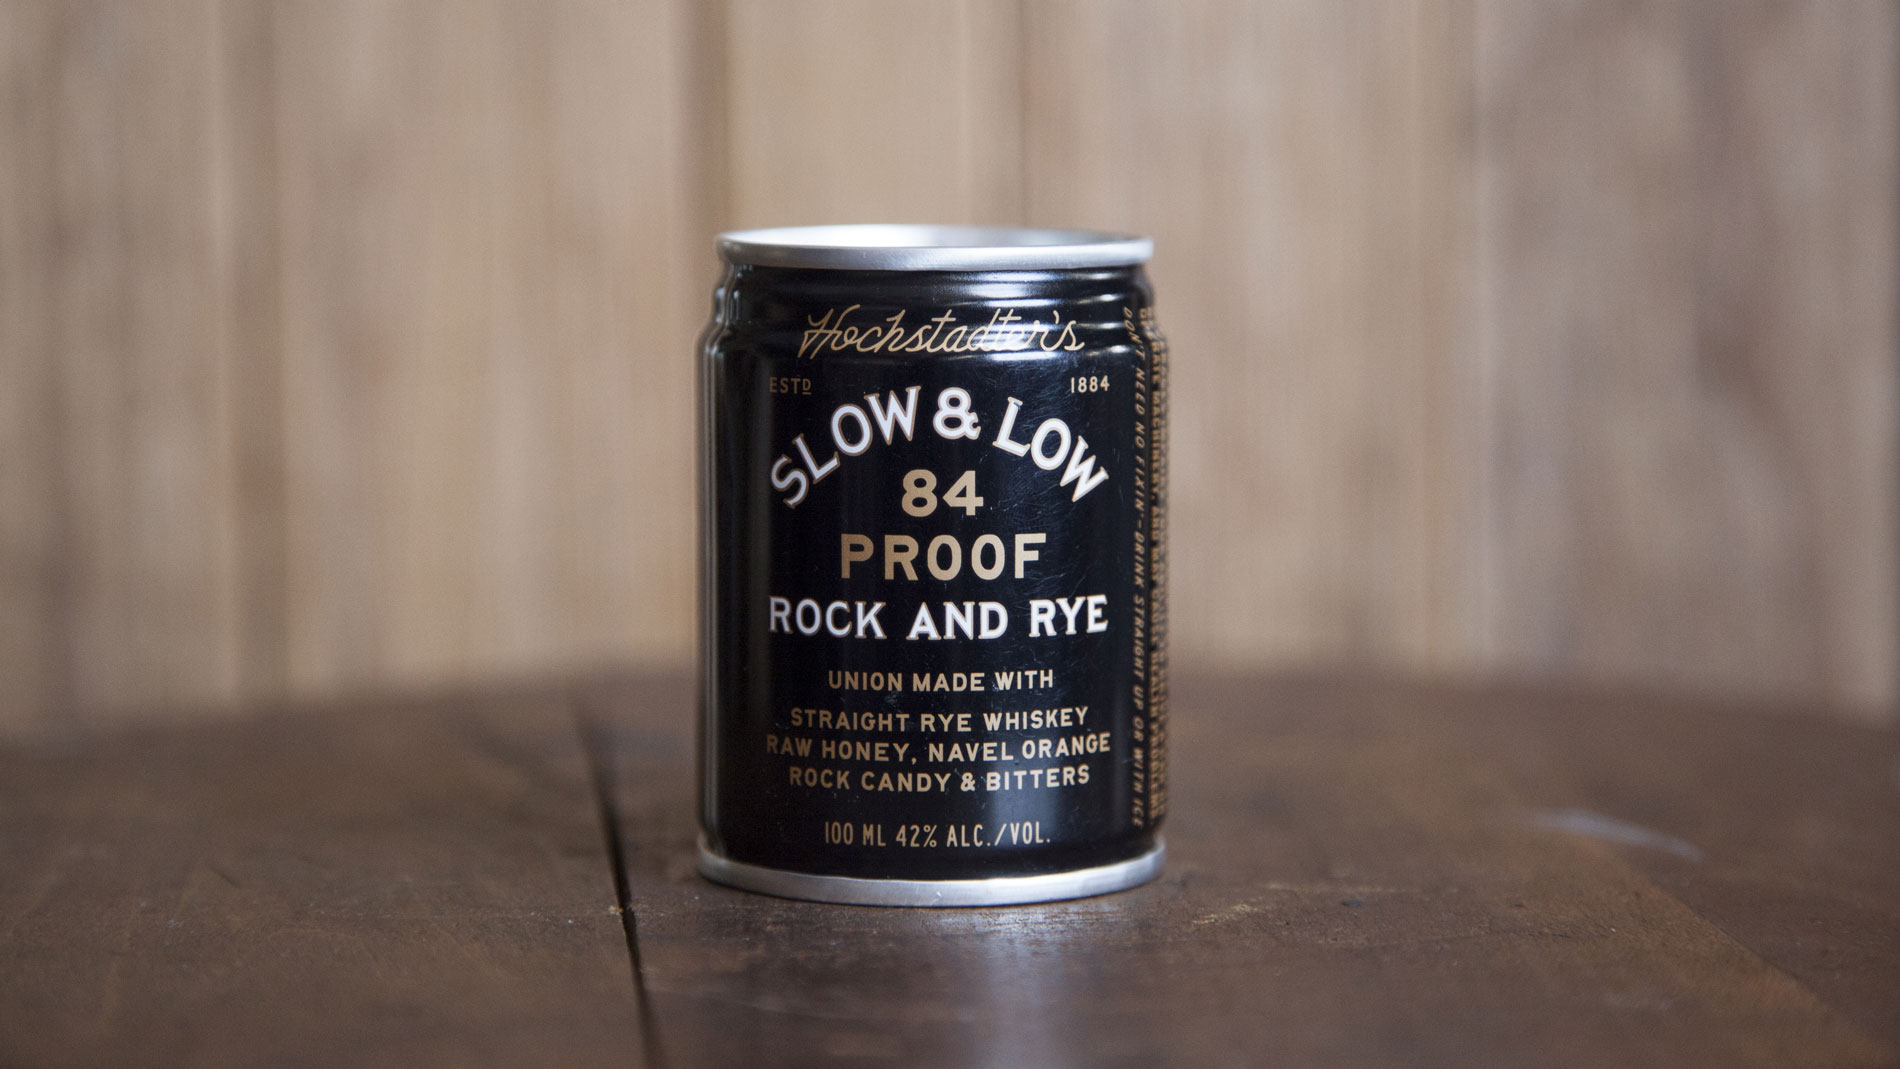 Slow and Low Rock & Rye